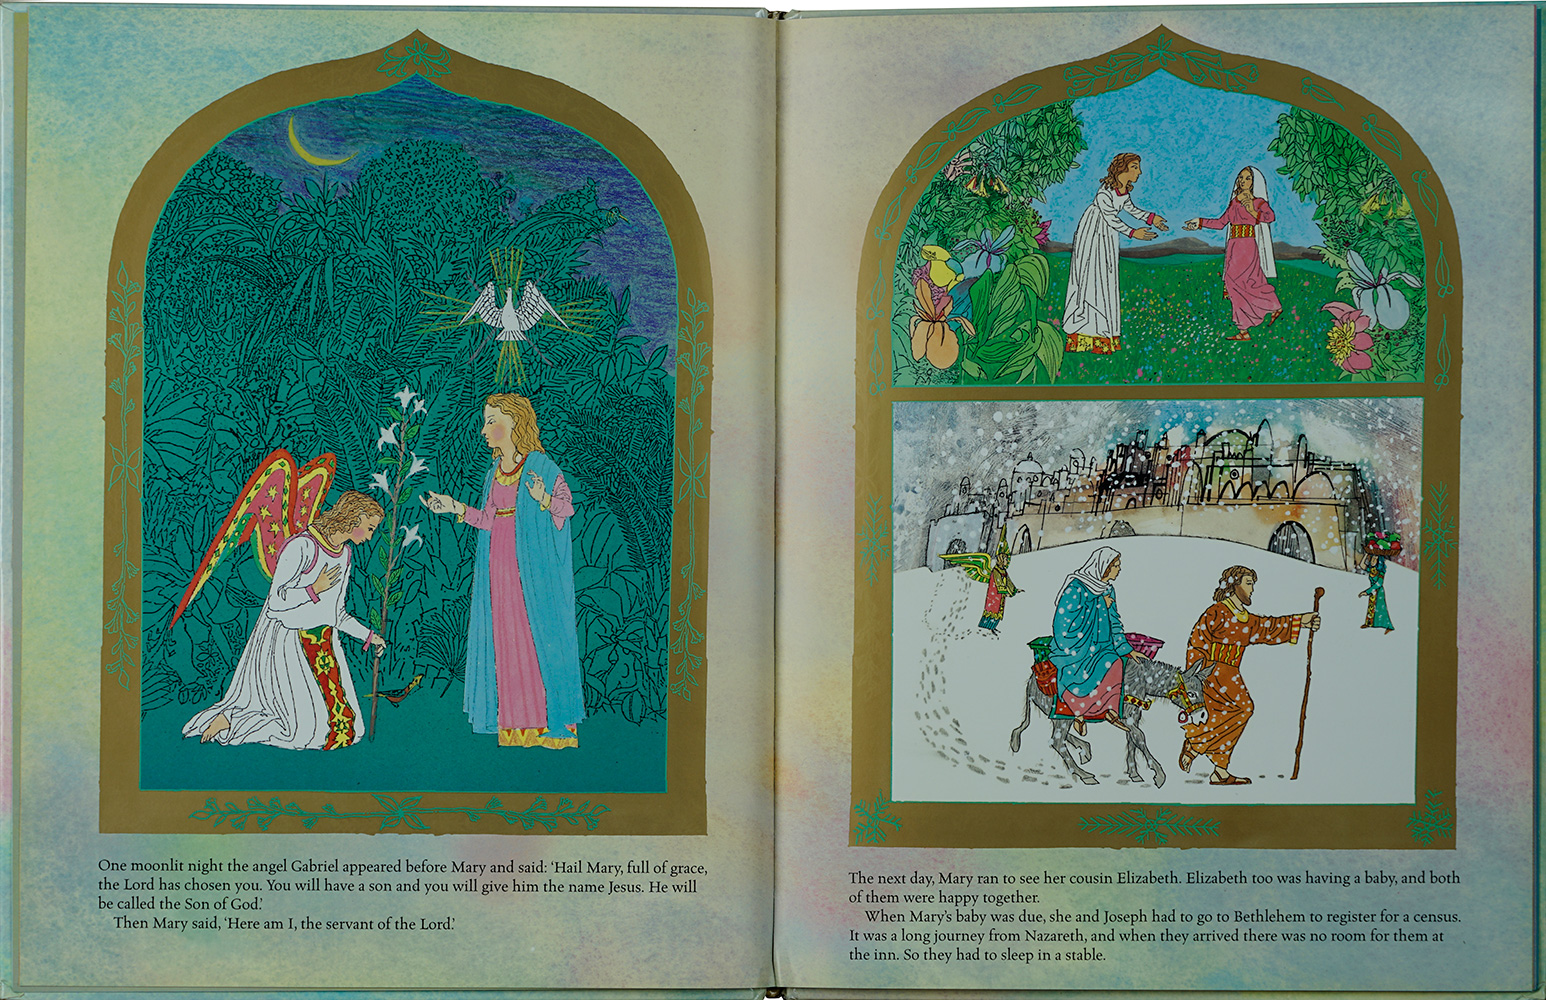 Photograph from the book to show its layout in the form of Renaissance panel painting, notably polyptychs which were often foldable altar pieces.